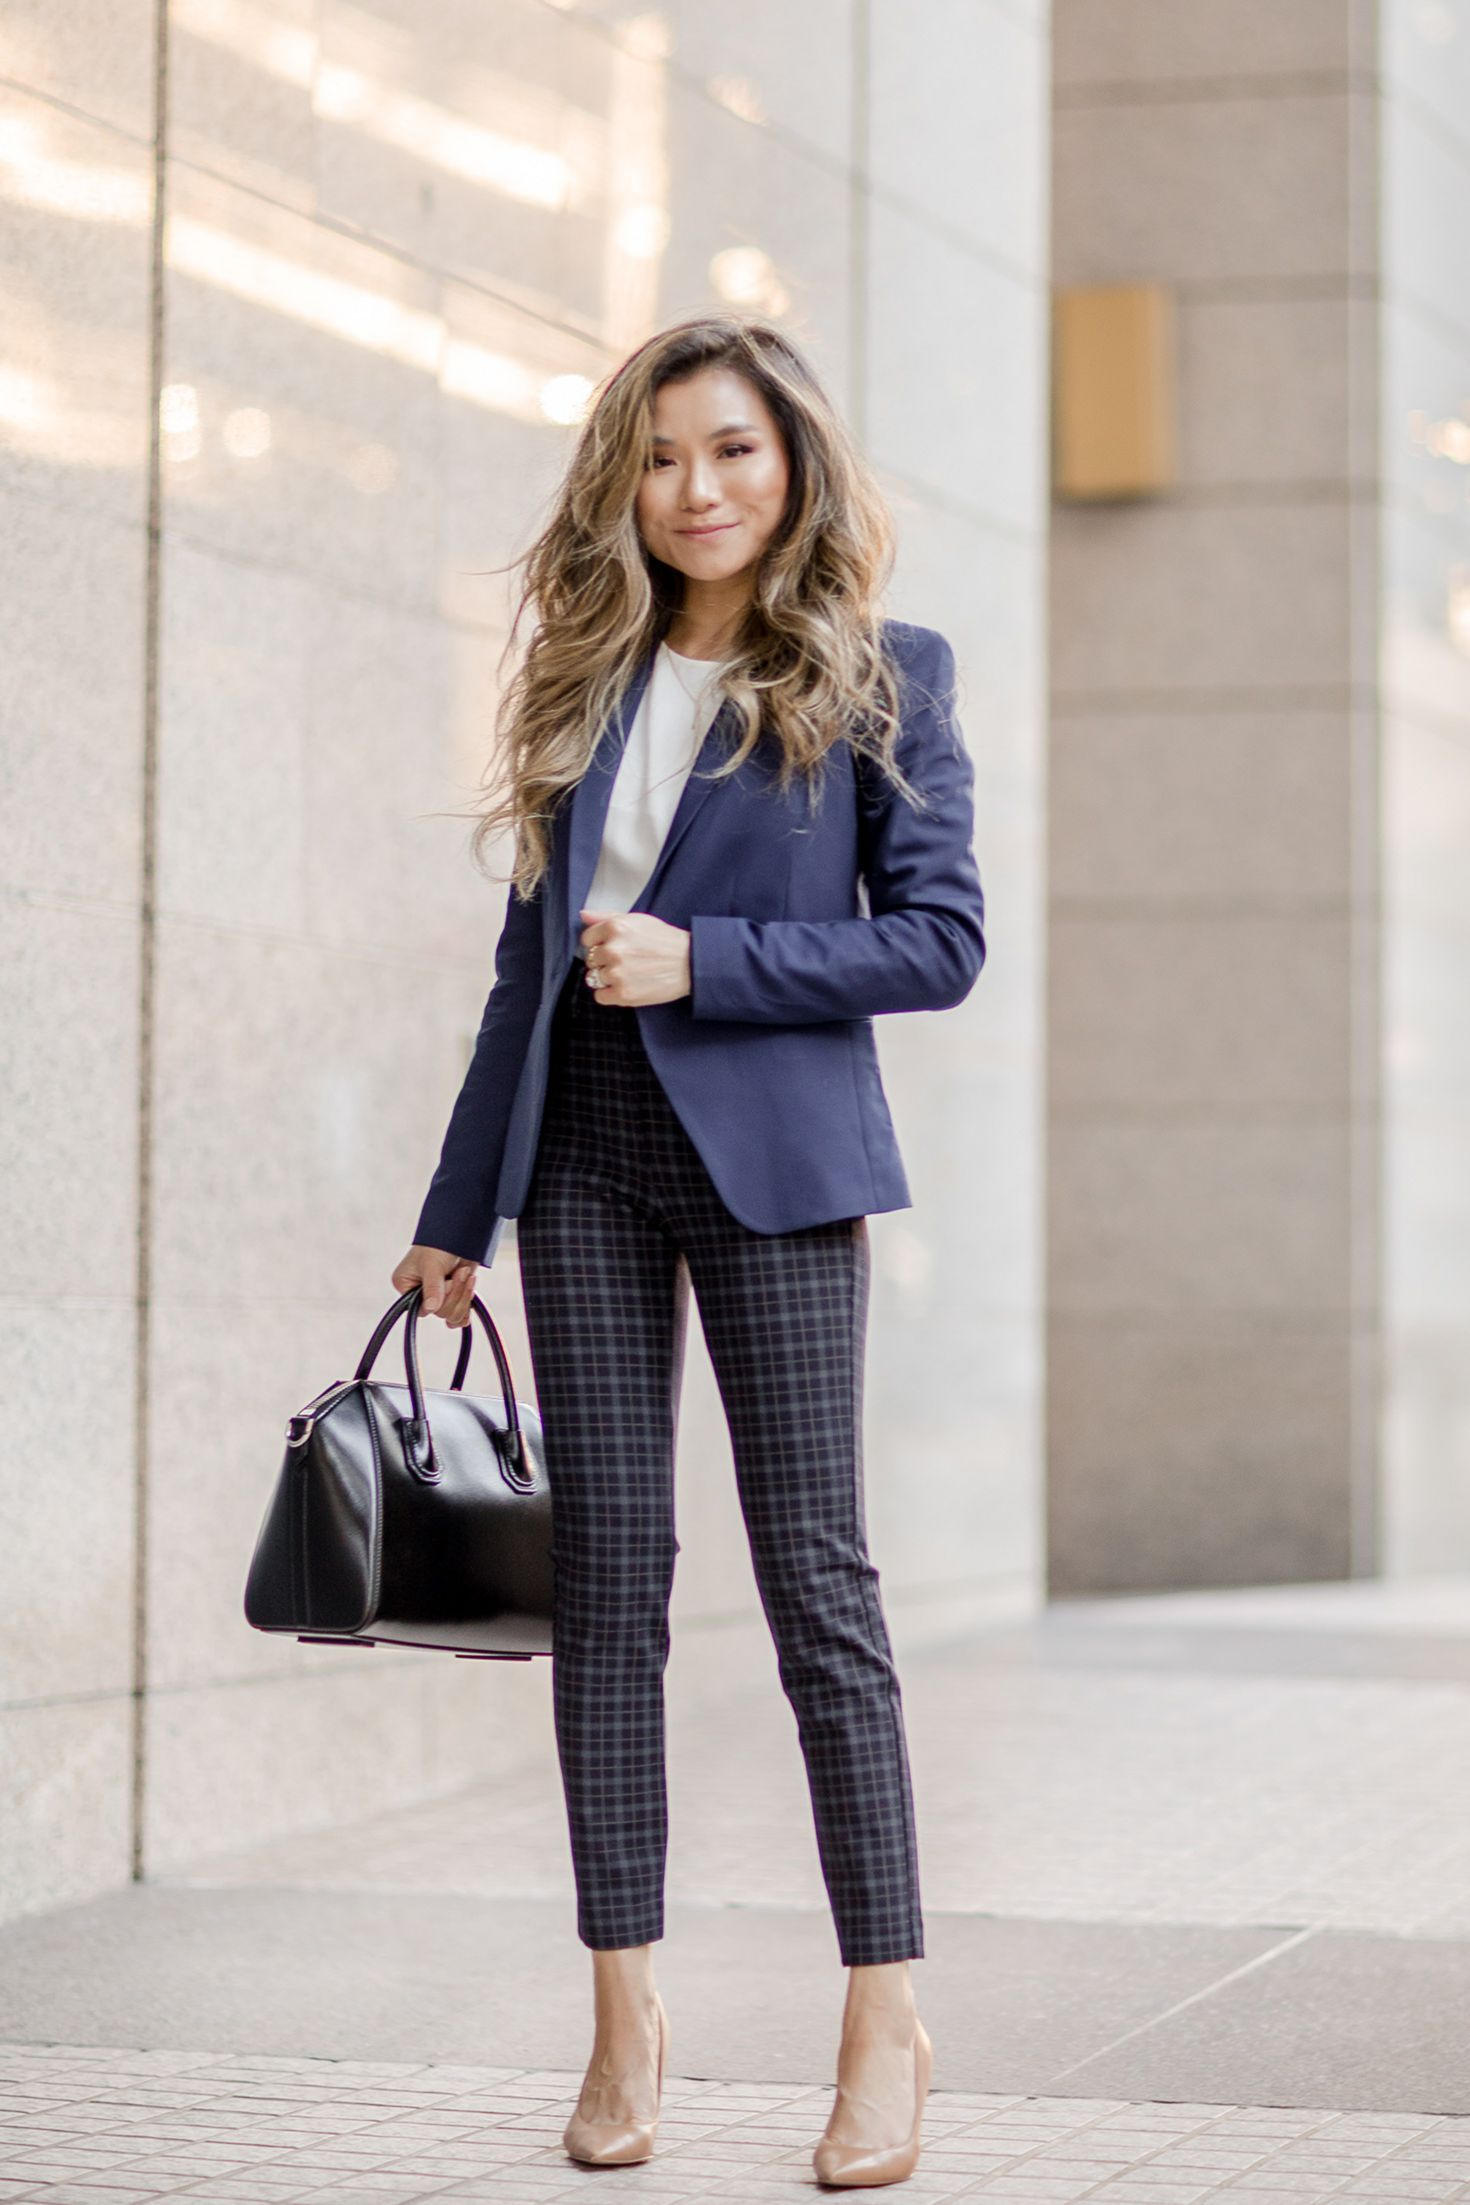 5+ Fashionable Work Outfit Ideas For Women To Looks More Elegant